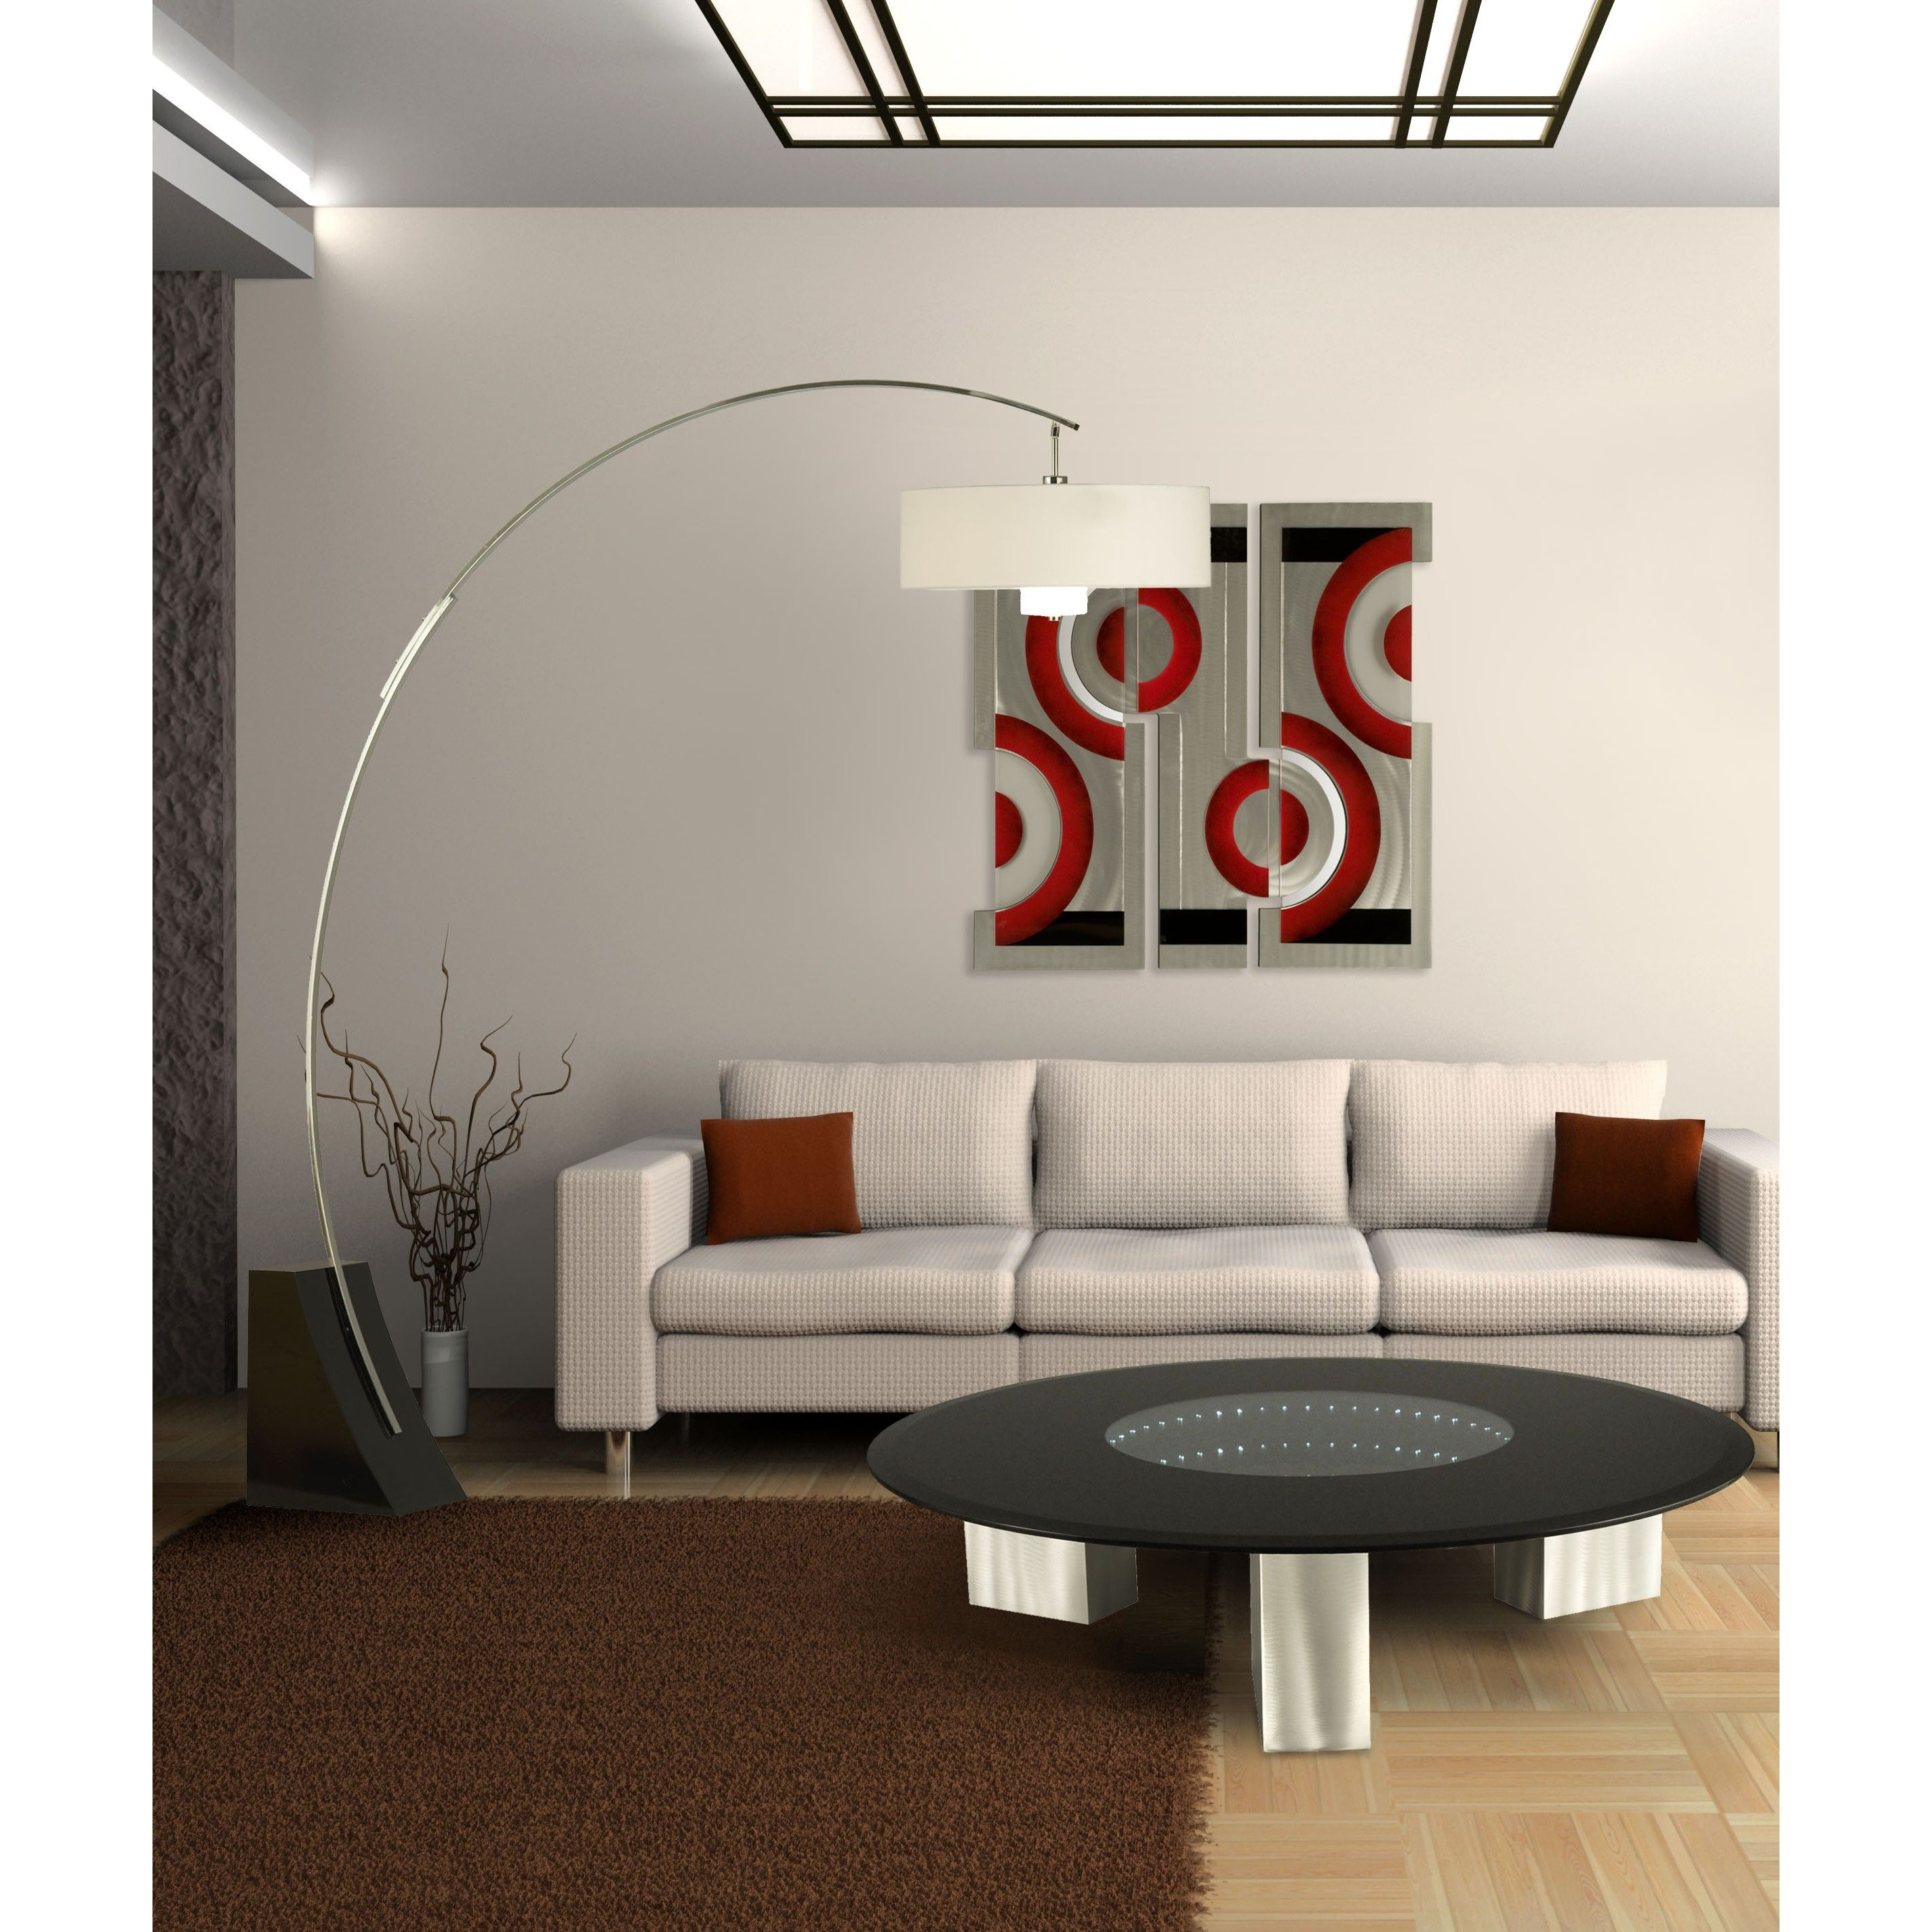 Arc floor lamp in living room - Wall Sculptures Studiolx Jasper Wall Graphic By Nova Lighting Living Room Floor Lampsarc